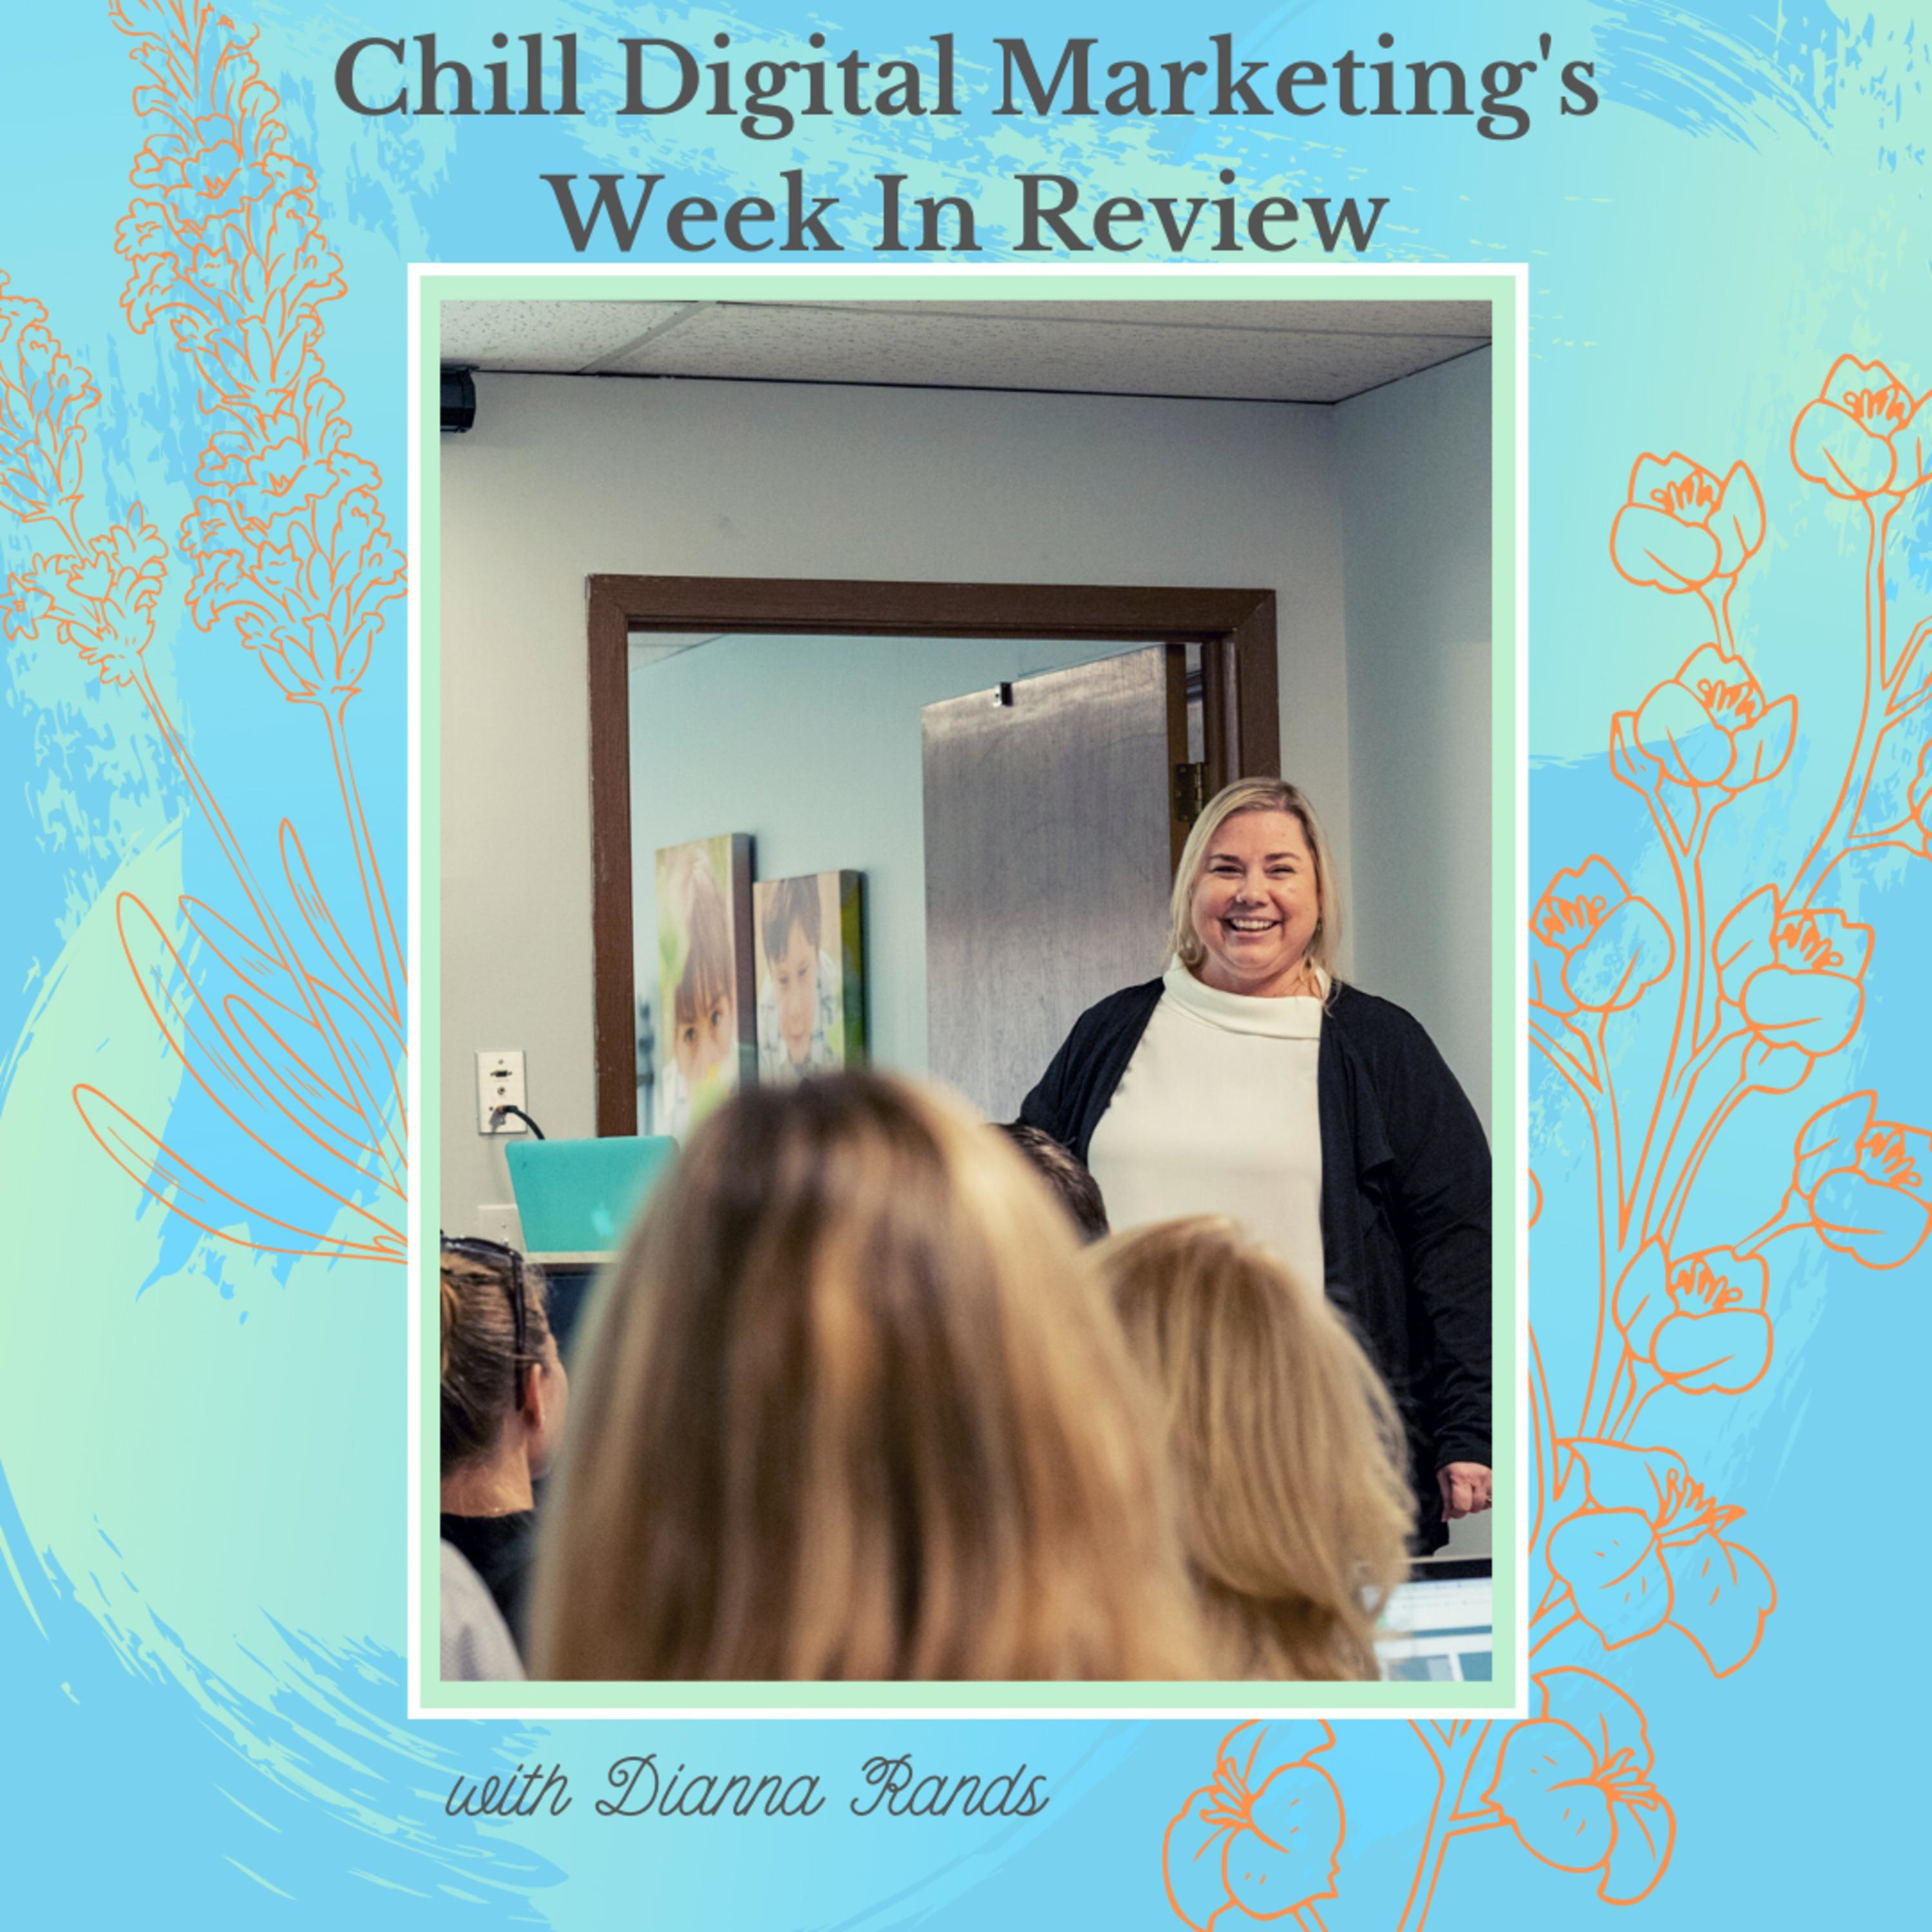 Chill Digital Marketing's Week in Review 2.28.20